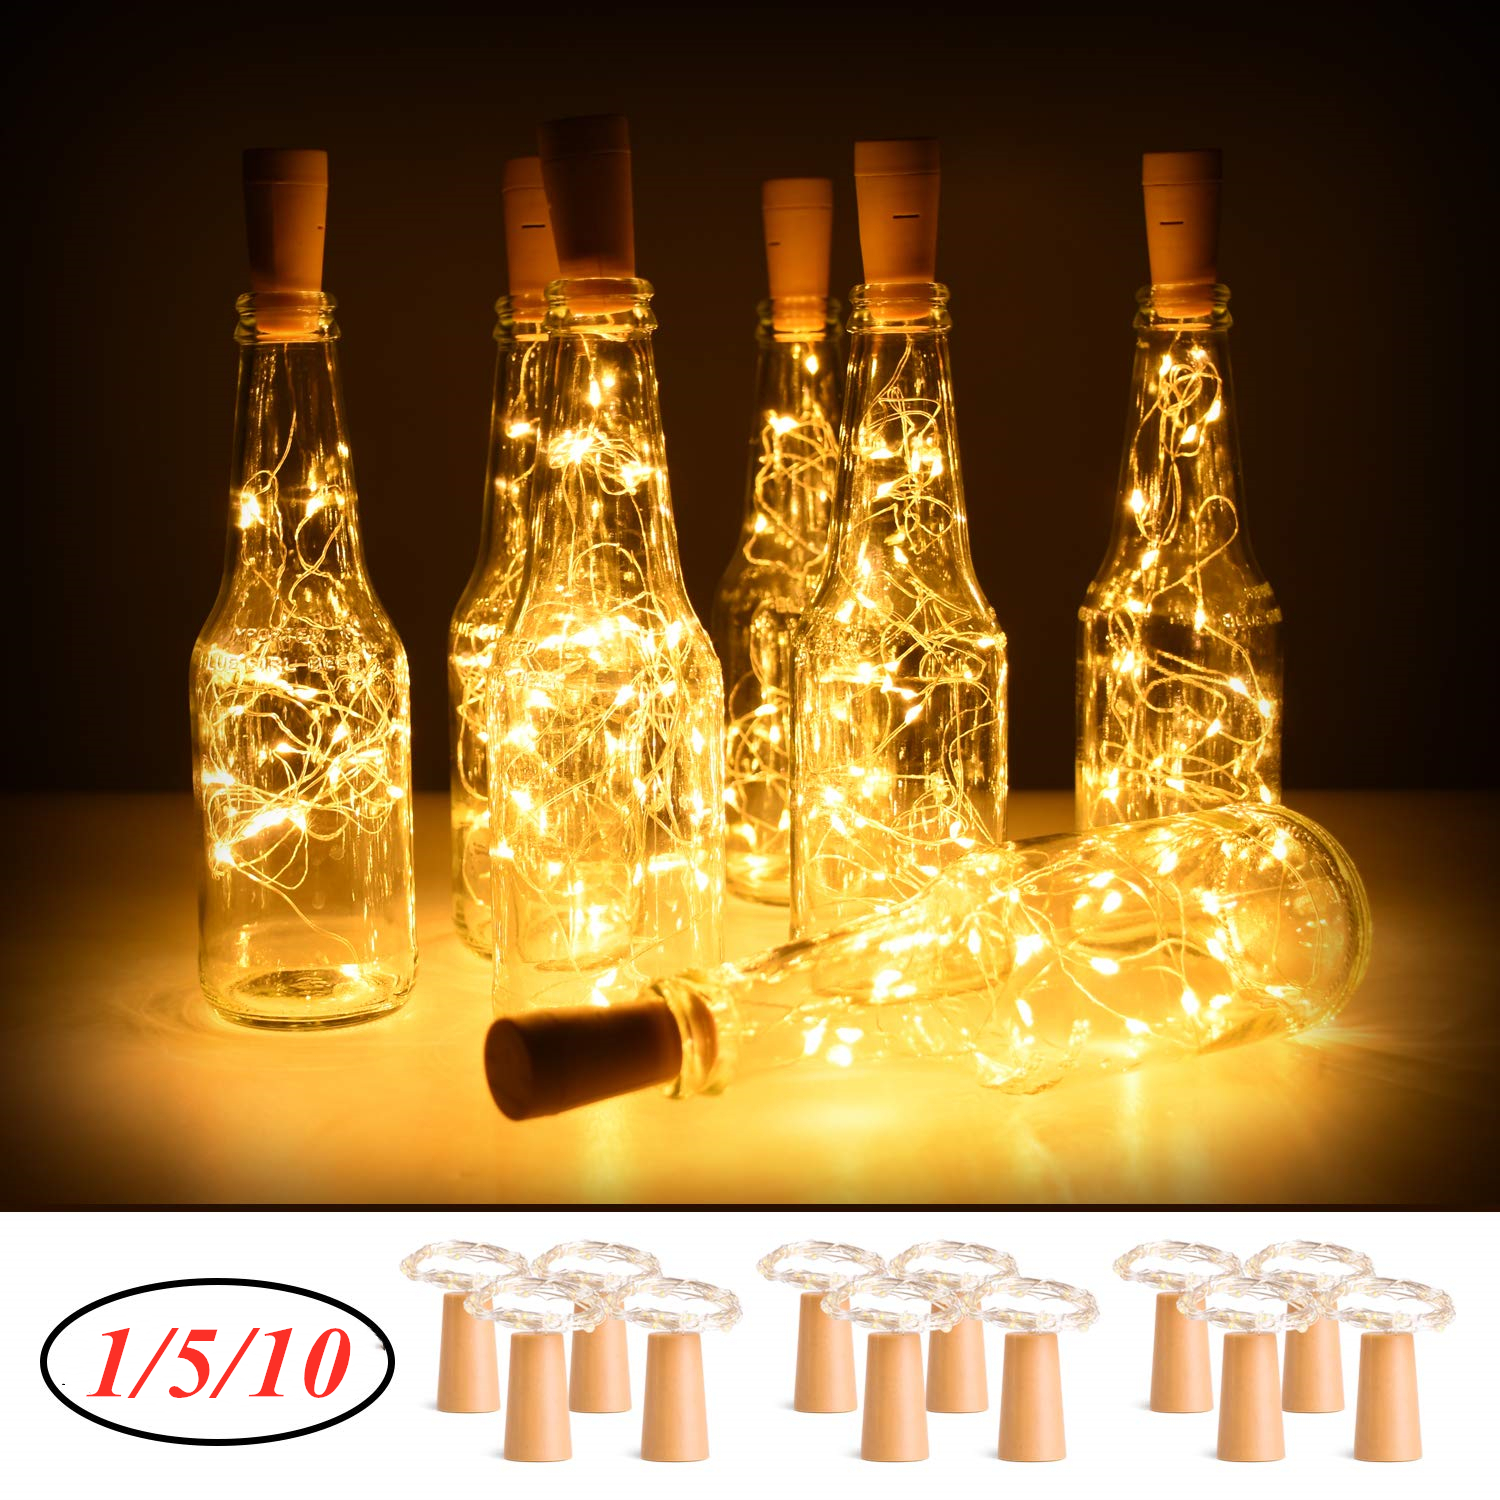 Wine Bottle Lights With Cork String Lights Battery Operated Copper Wire Fairy Light For DIY,Party,Christmas,Wedding Decor